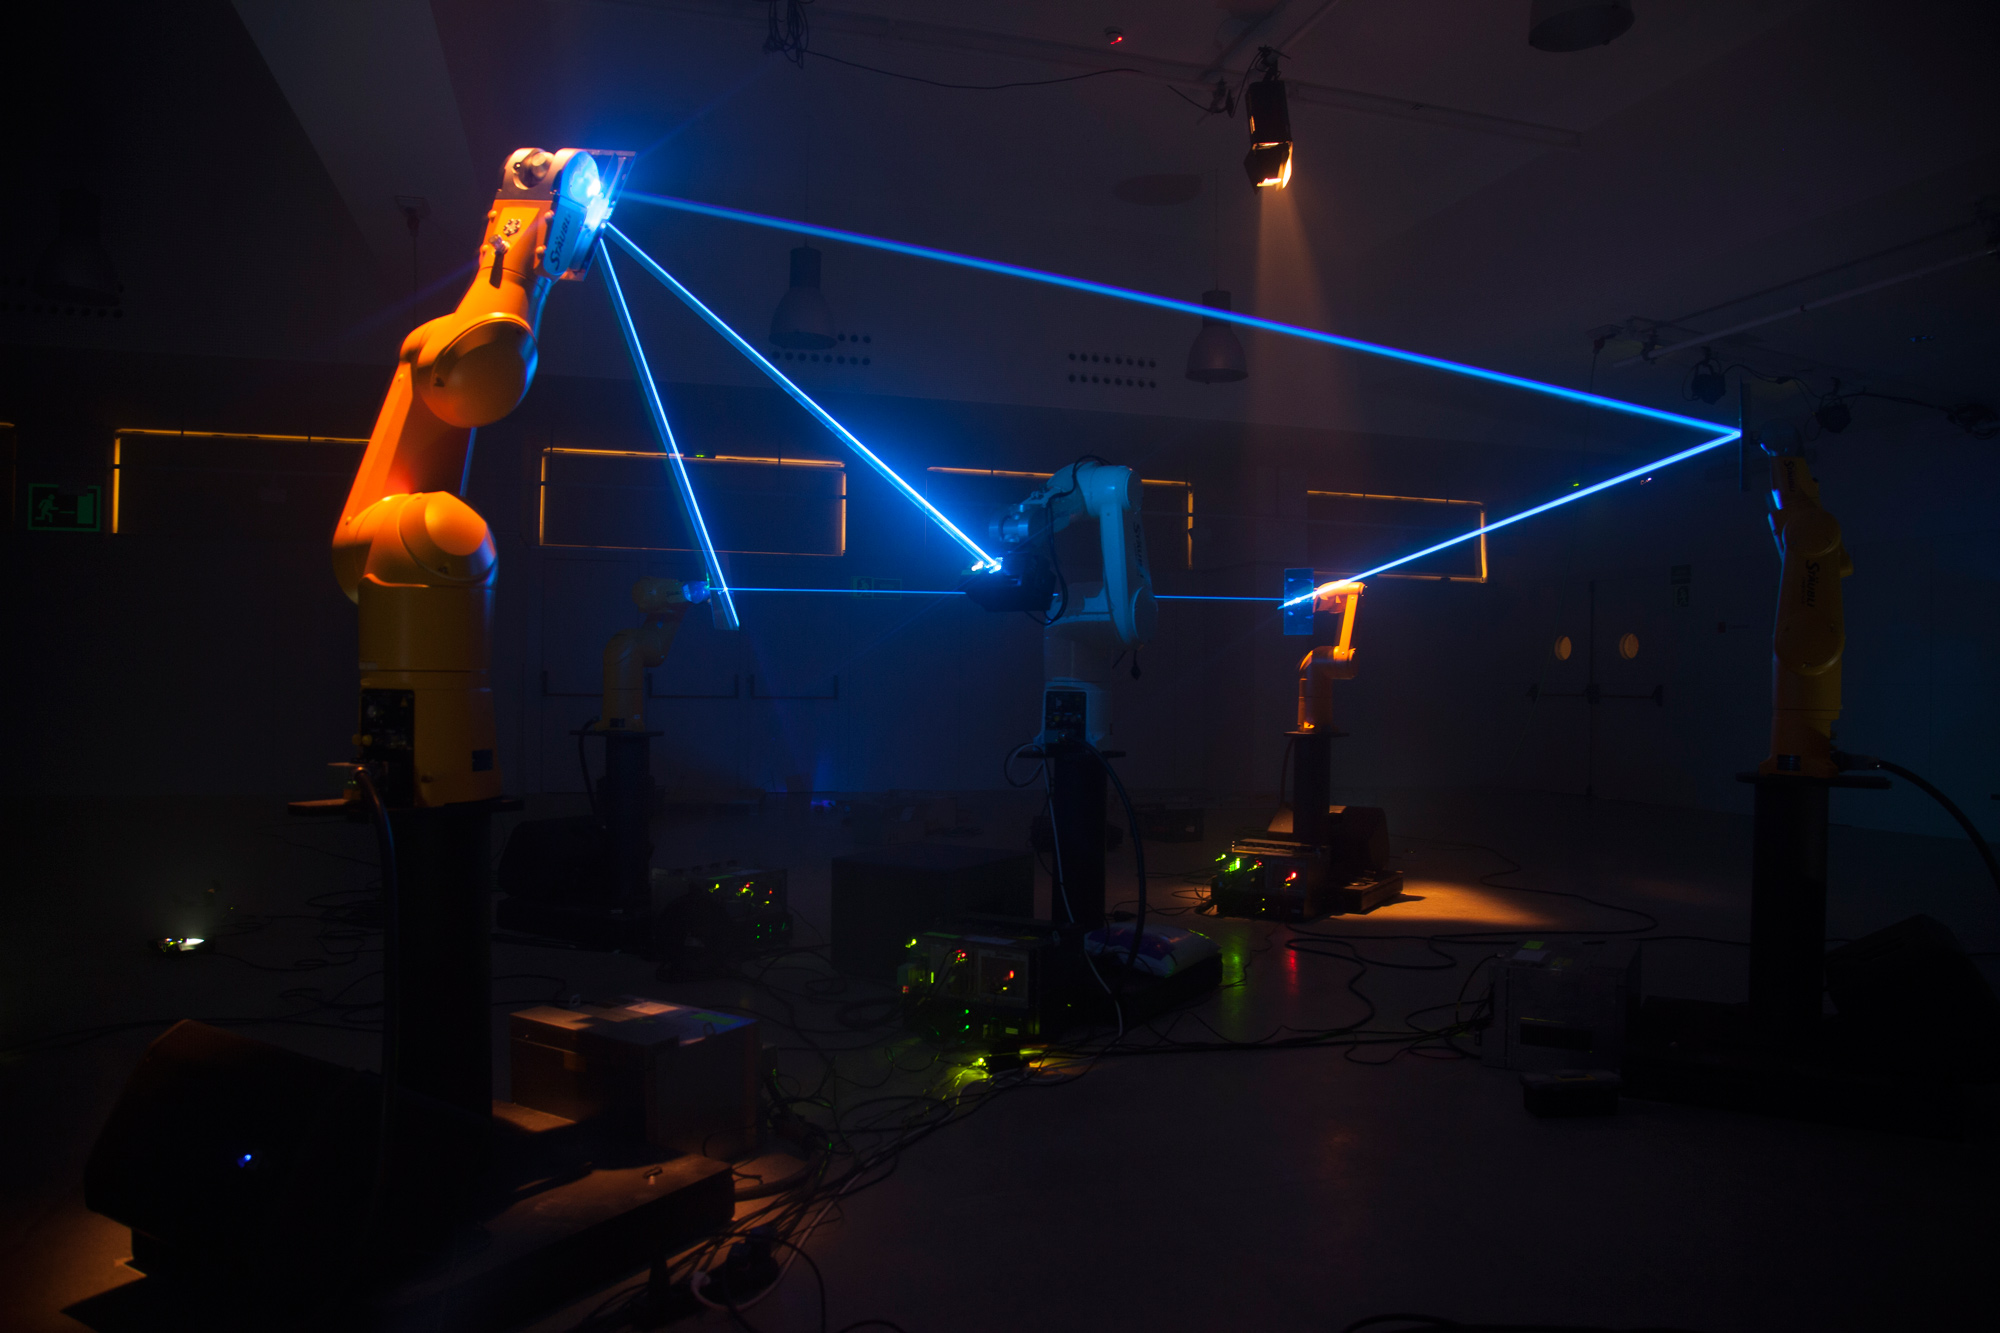 Robotic arms playing with a laser beam.